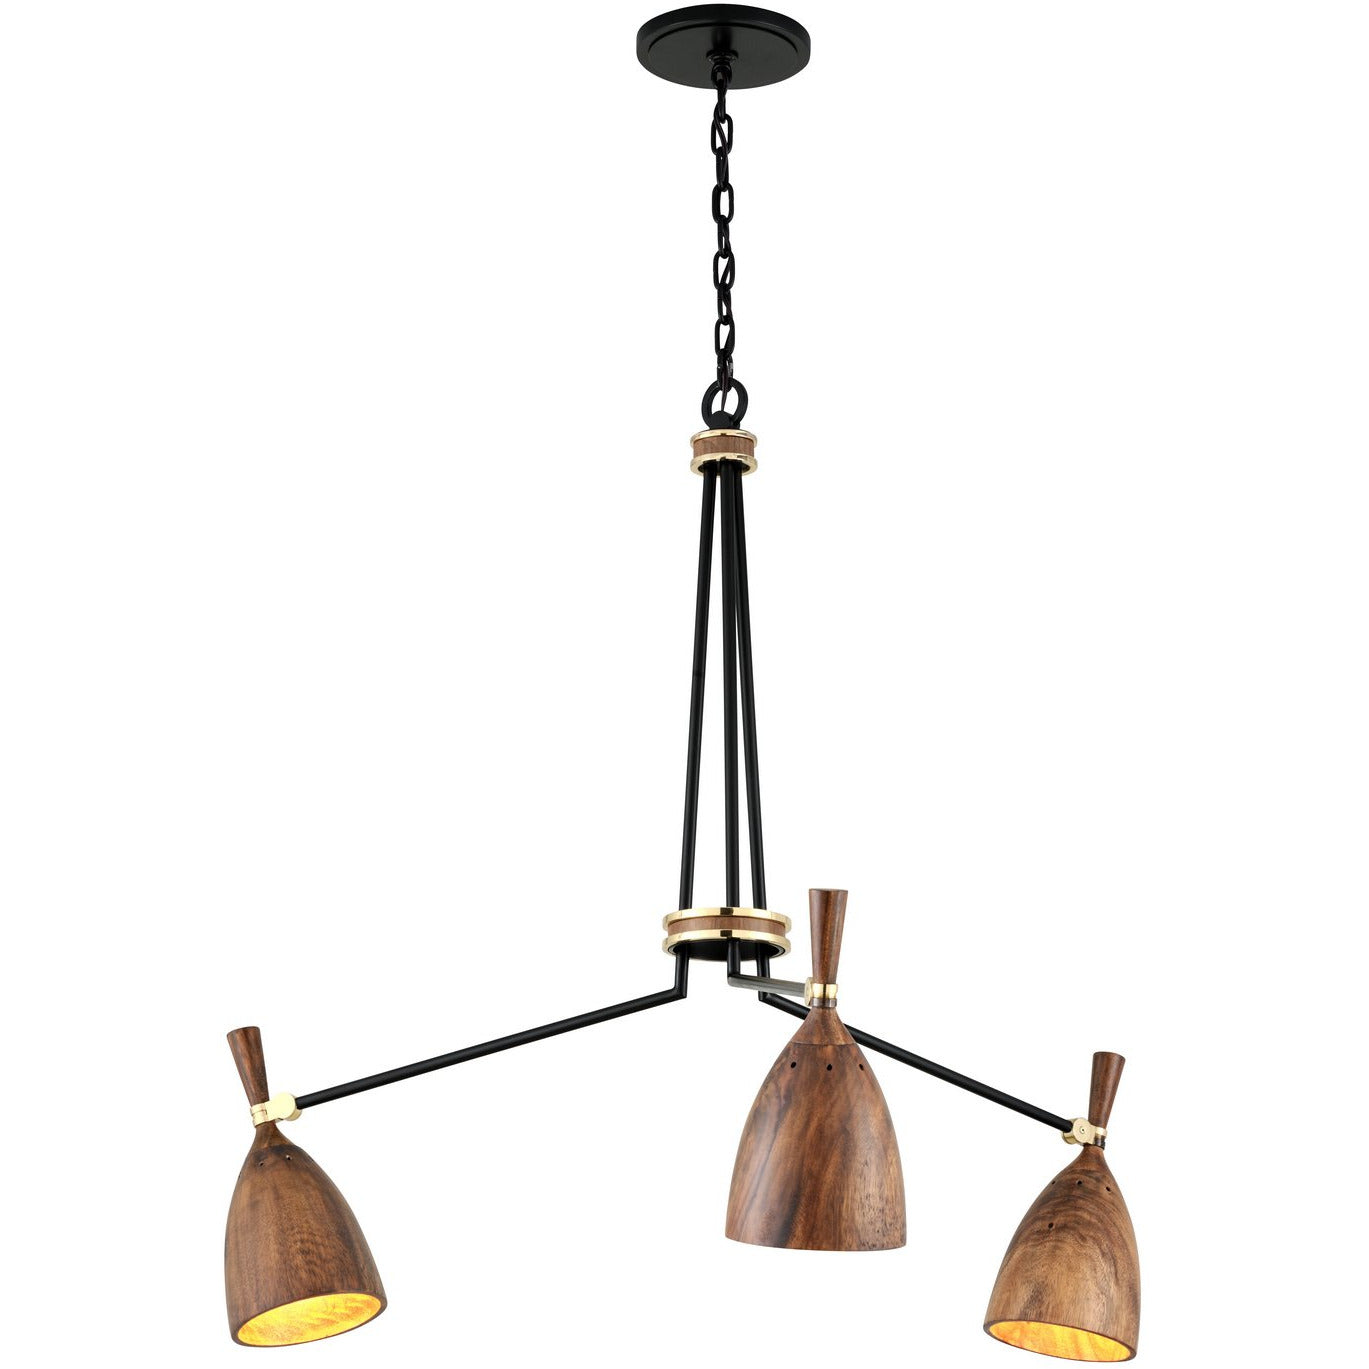 Corbett Lighting - 280-03 - Chandelier - Utopia - Black Brass Acacia Wood Shades - Martyn Lawrence Bullard